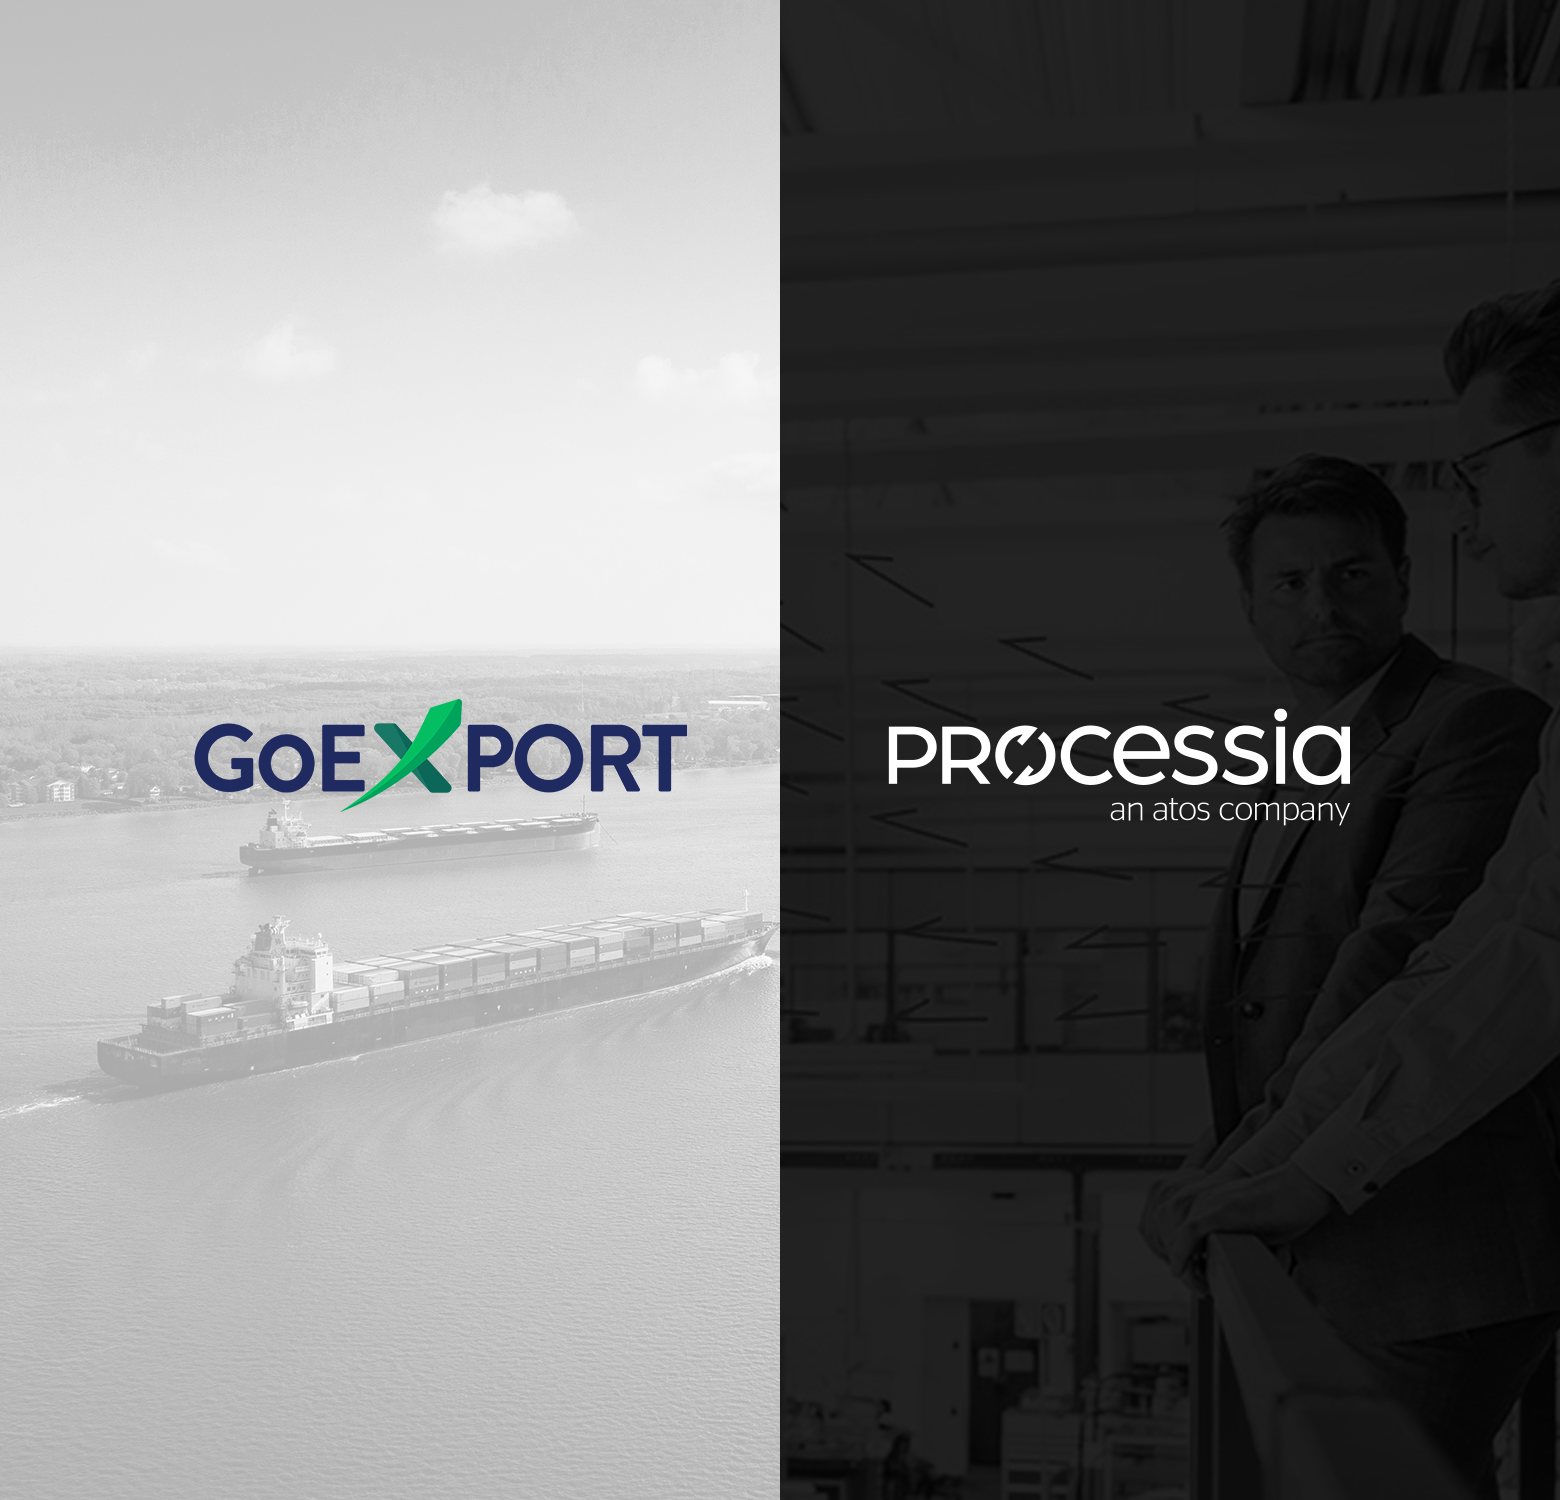 New clients Goexport and Processia